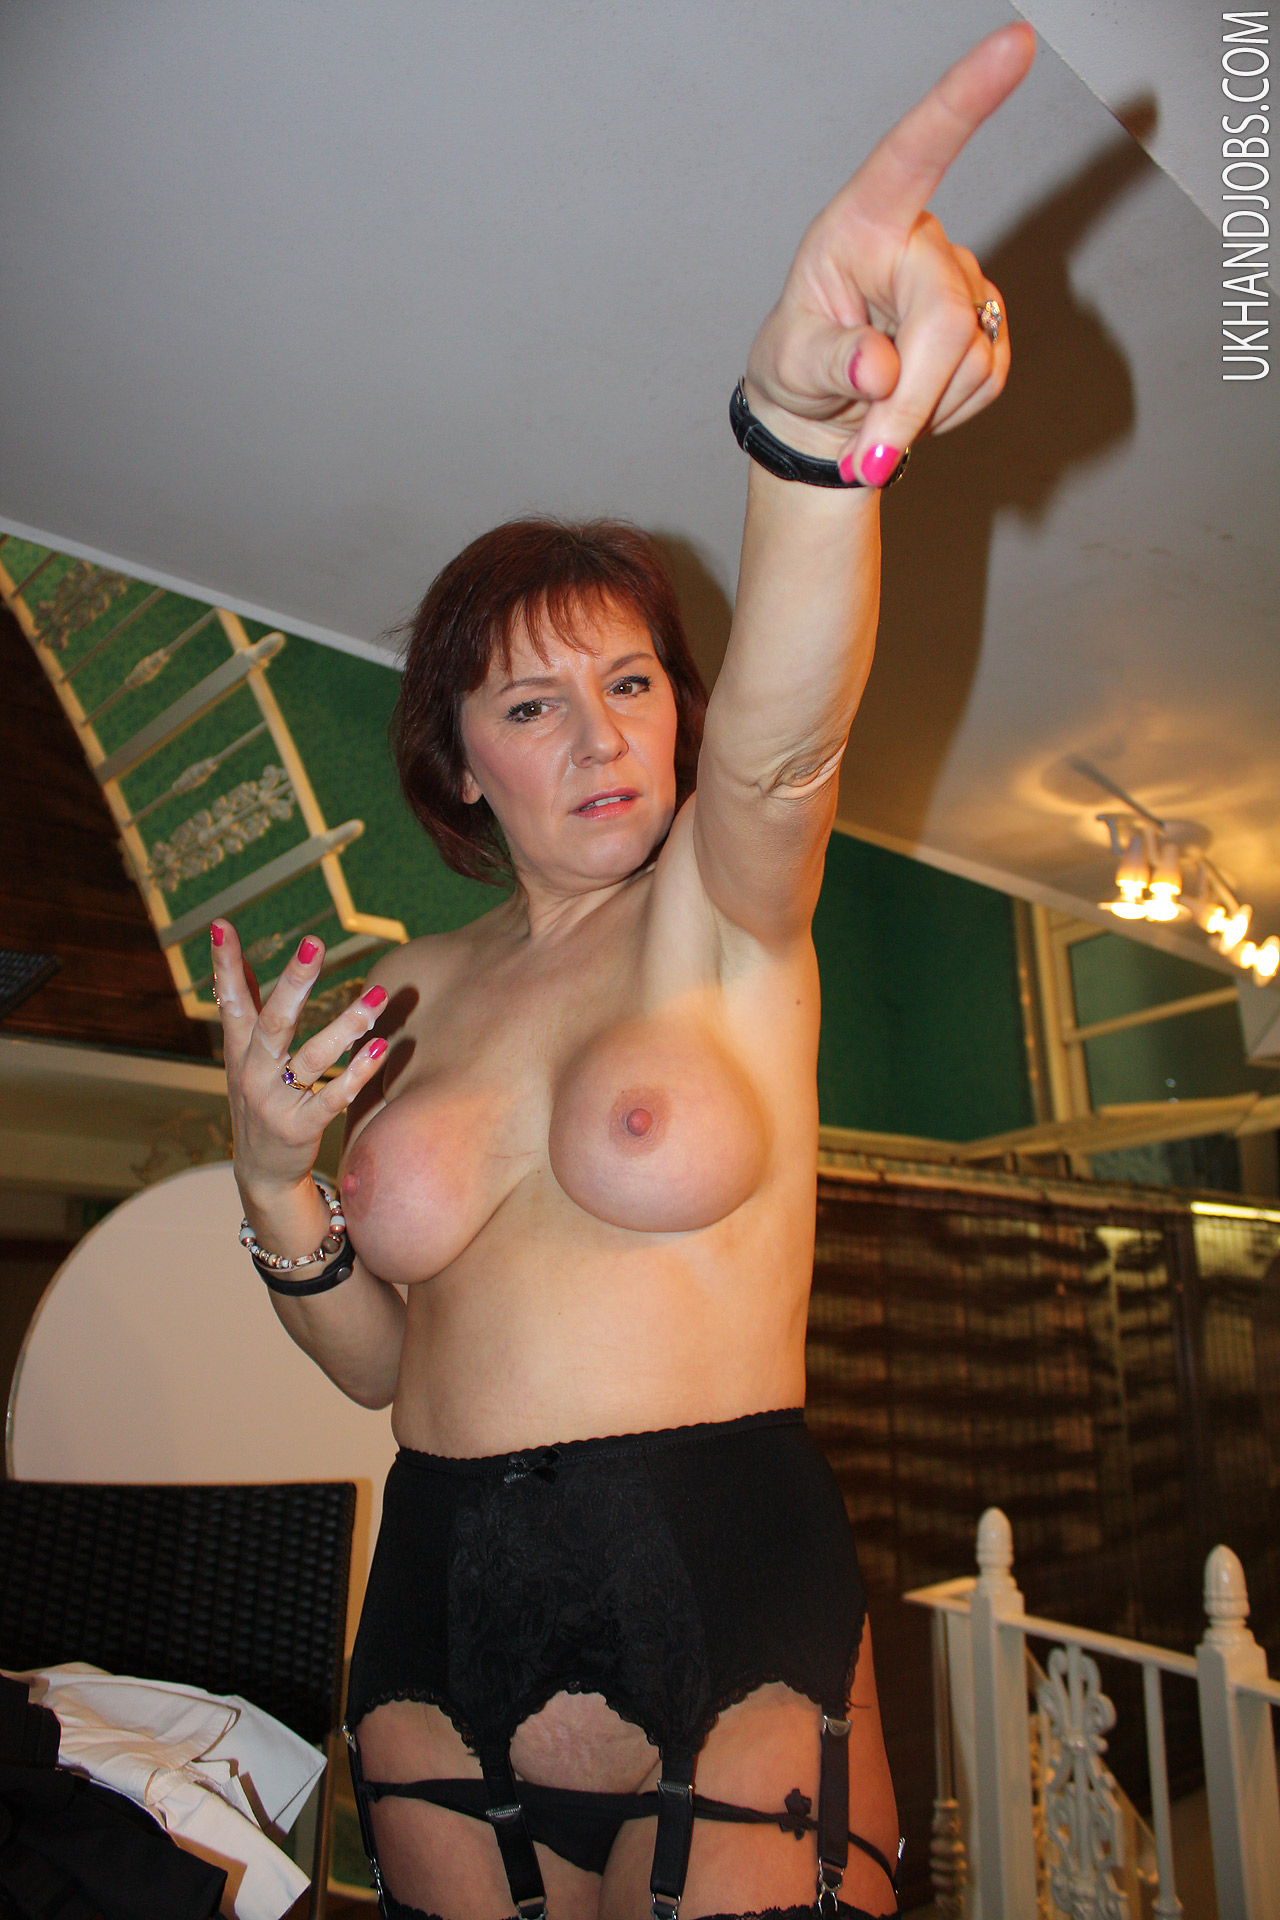 Join. All mature british wendy taylor opinion you